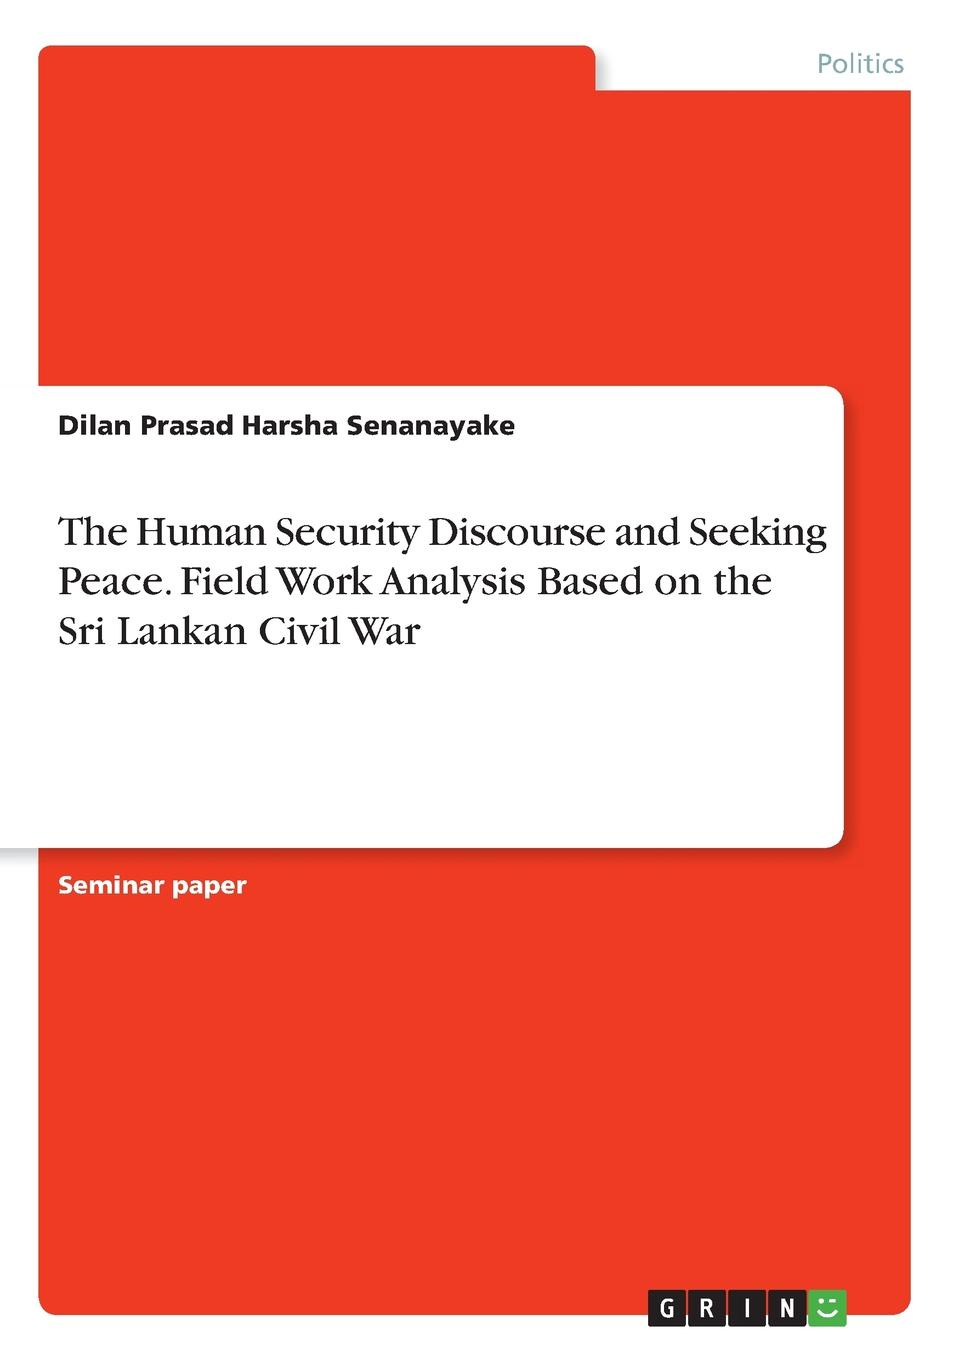 Dilan Prasad Harsha Senanayake The Human Security Discourse and Seeking Peace. Field Work Analysis Based on the Sri Lankan Civil War dilan prasad harsha senanayake the influence of the civil war on mahinda rajapaksa s foreign policy in sri lanka during 2005 2015